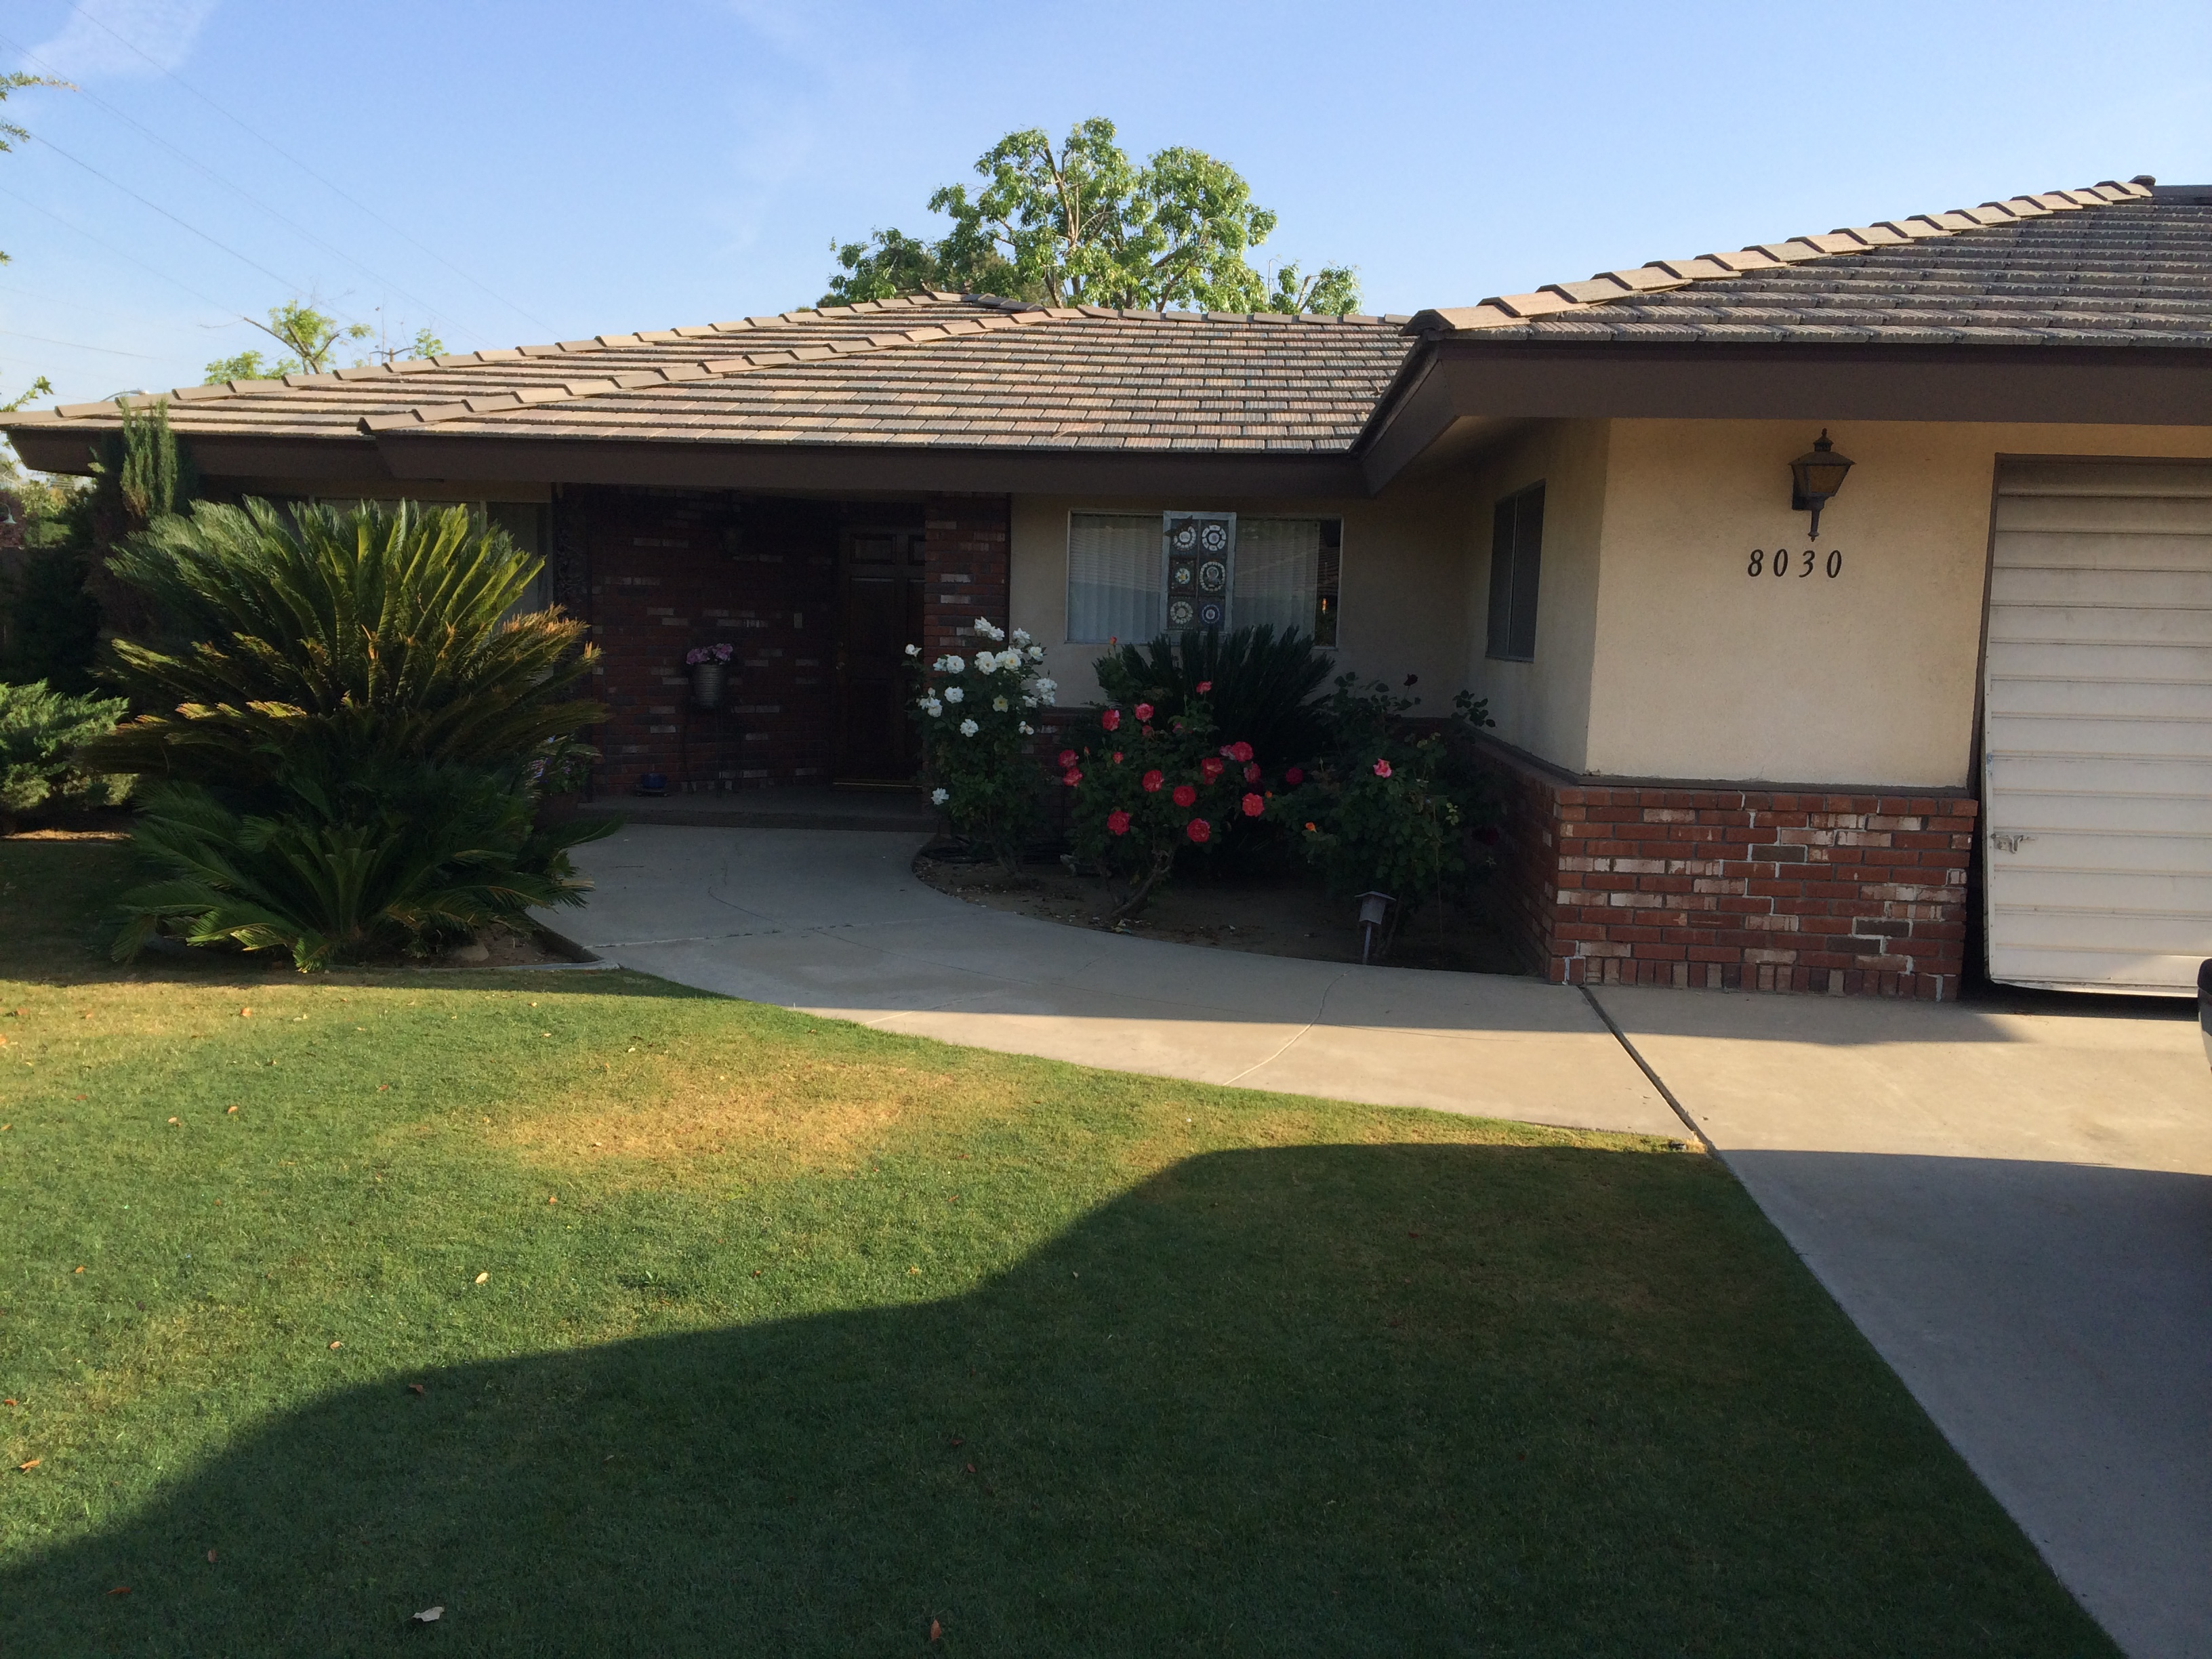 northwest bakersfield homes for rent trend home design real estate bakersfield ca trend home design and decor